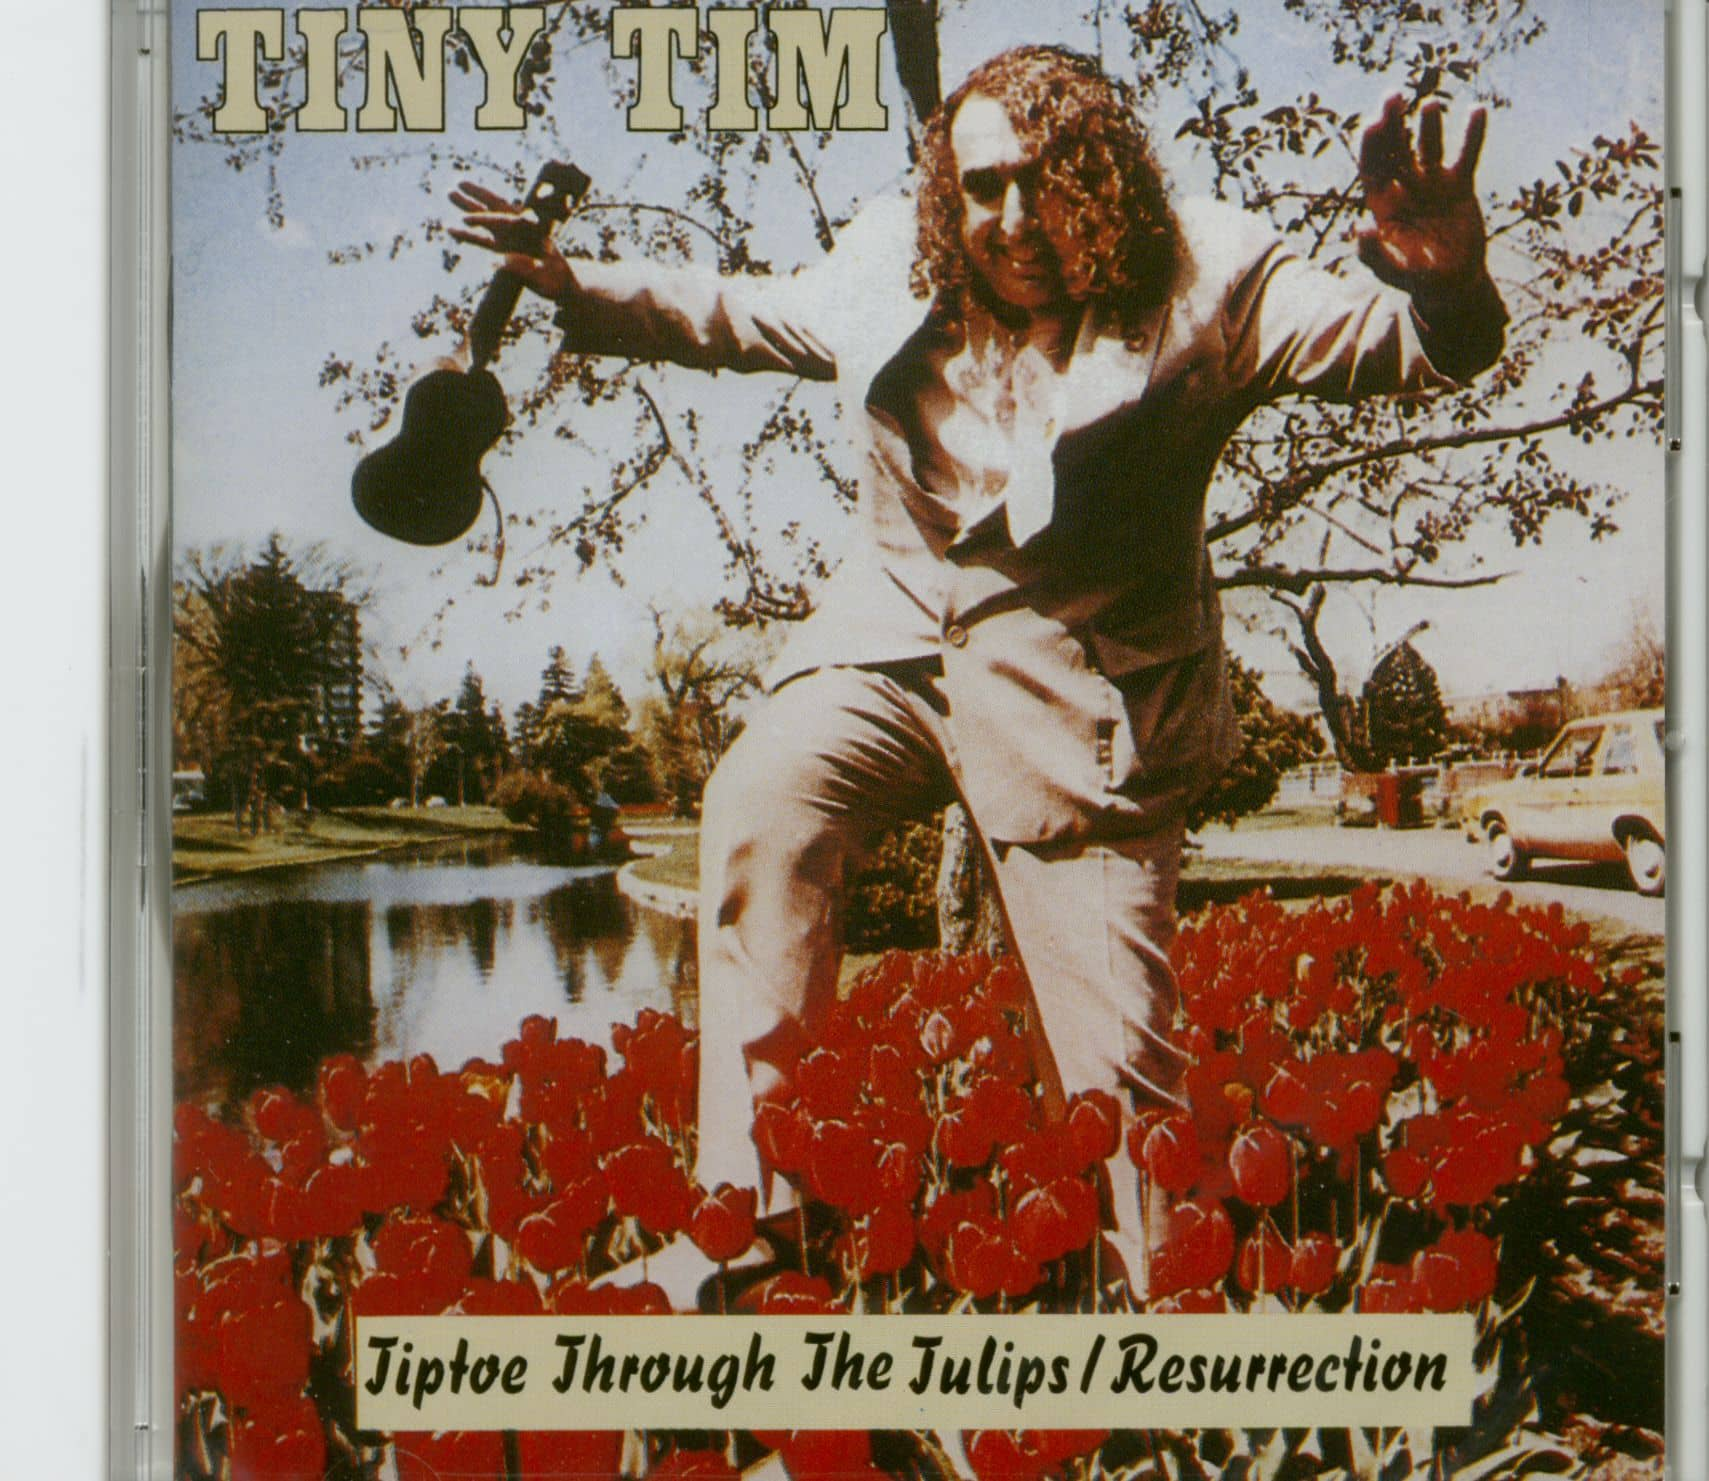 Tiptoeing Through Tulips After Madisons >> Tiny Tim Cd Tiptoe Through The Tulips Resurrection Cd Bear